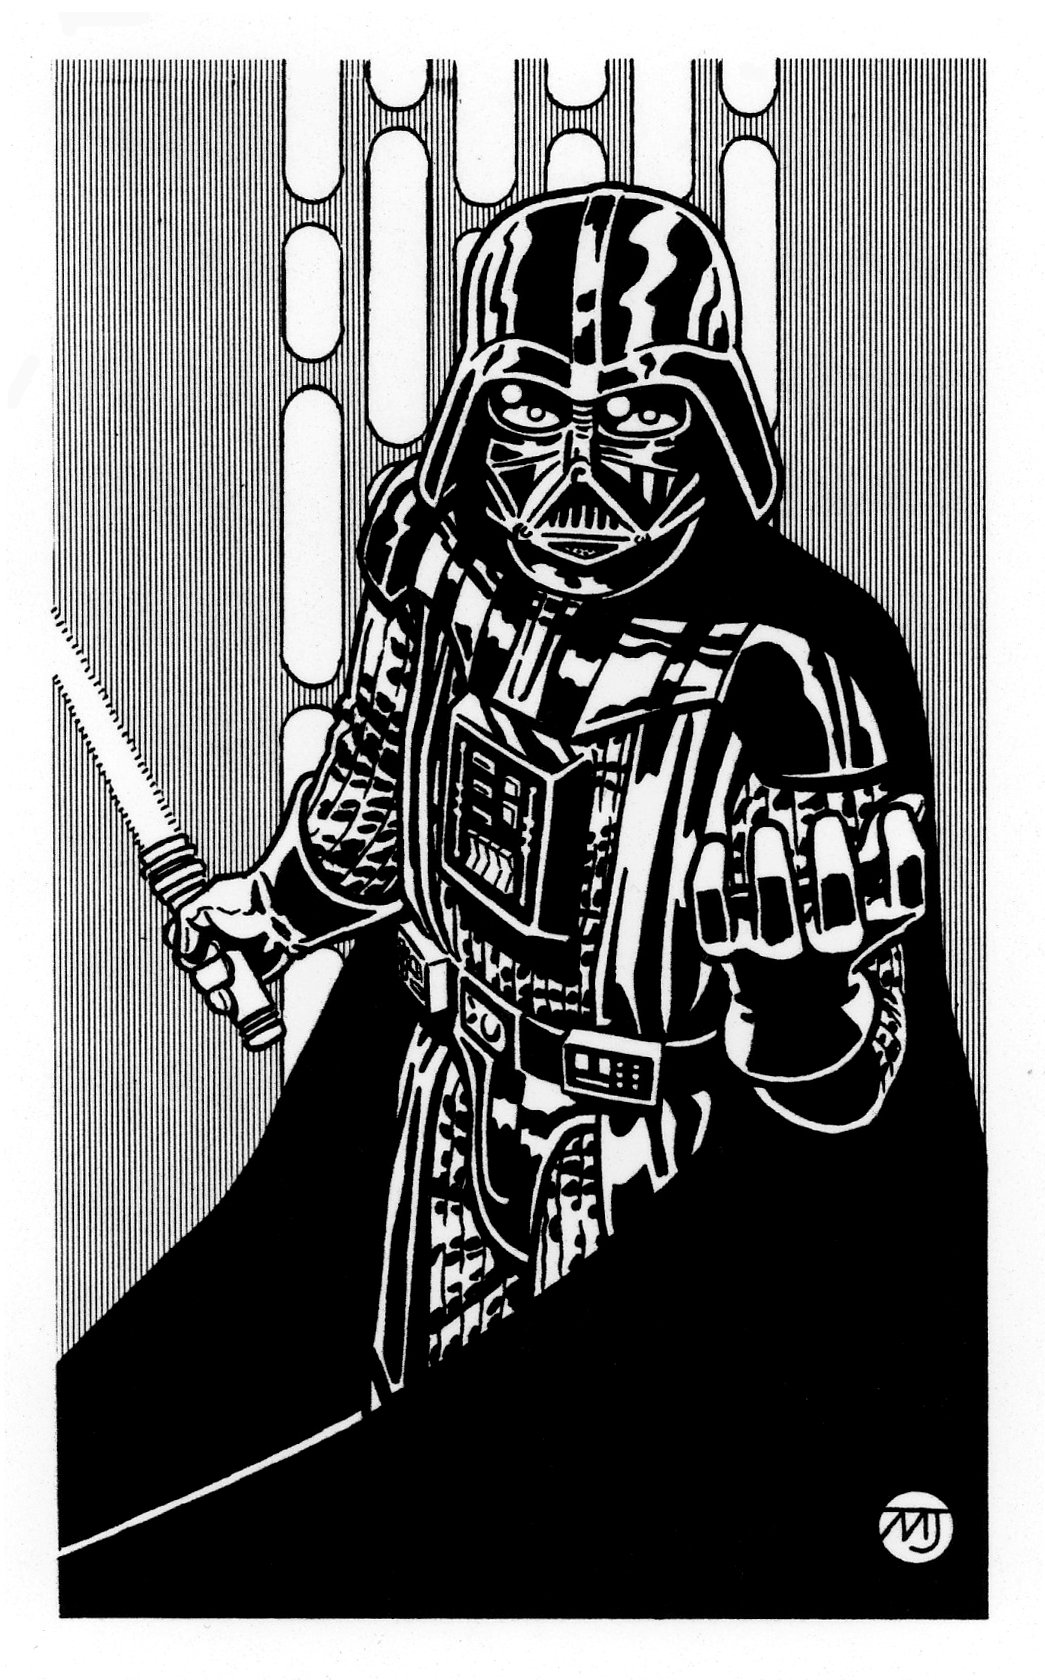 Star wars darth vader by steampoweredmikej on deviantart for Darth vader black and white